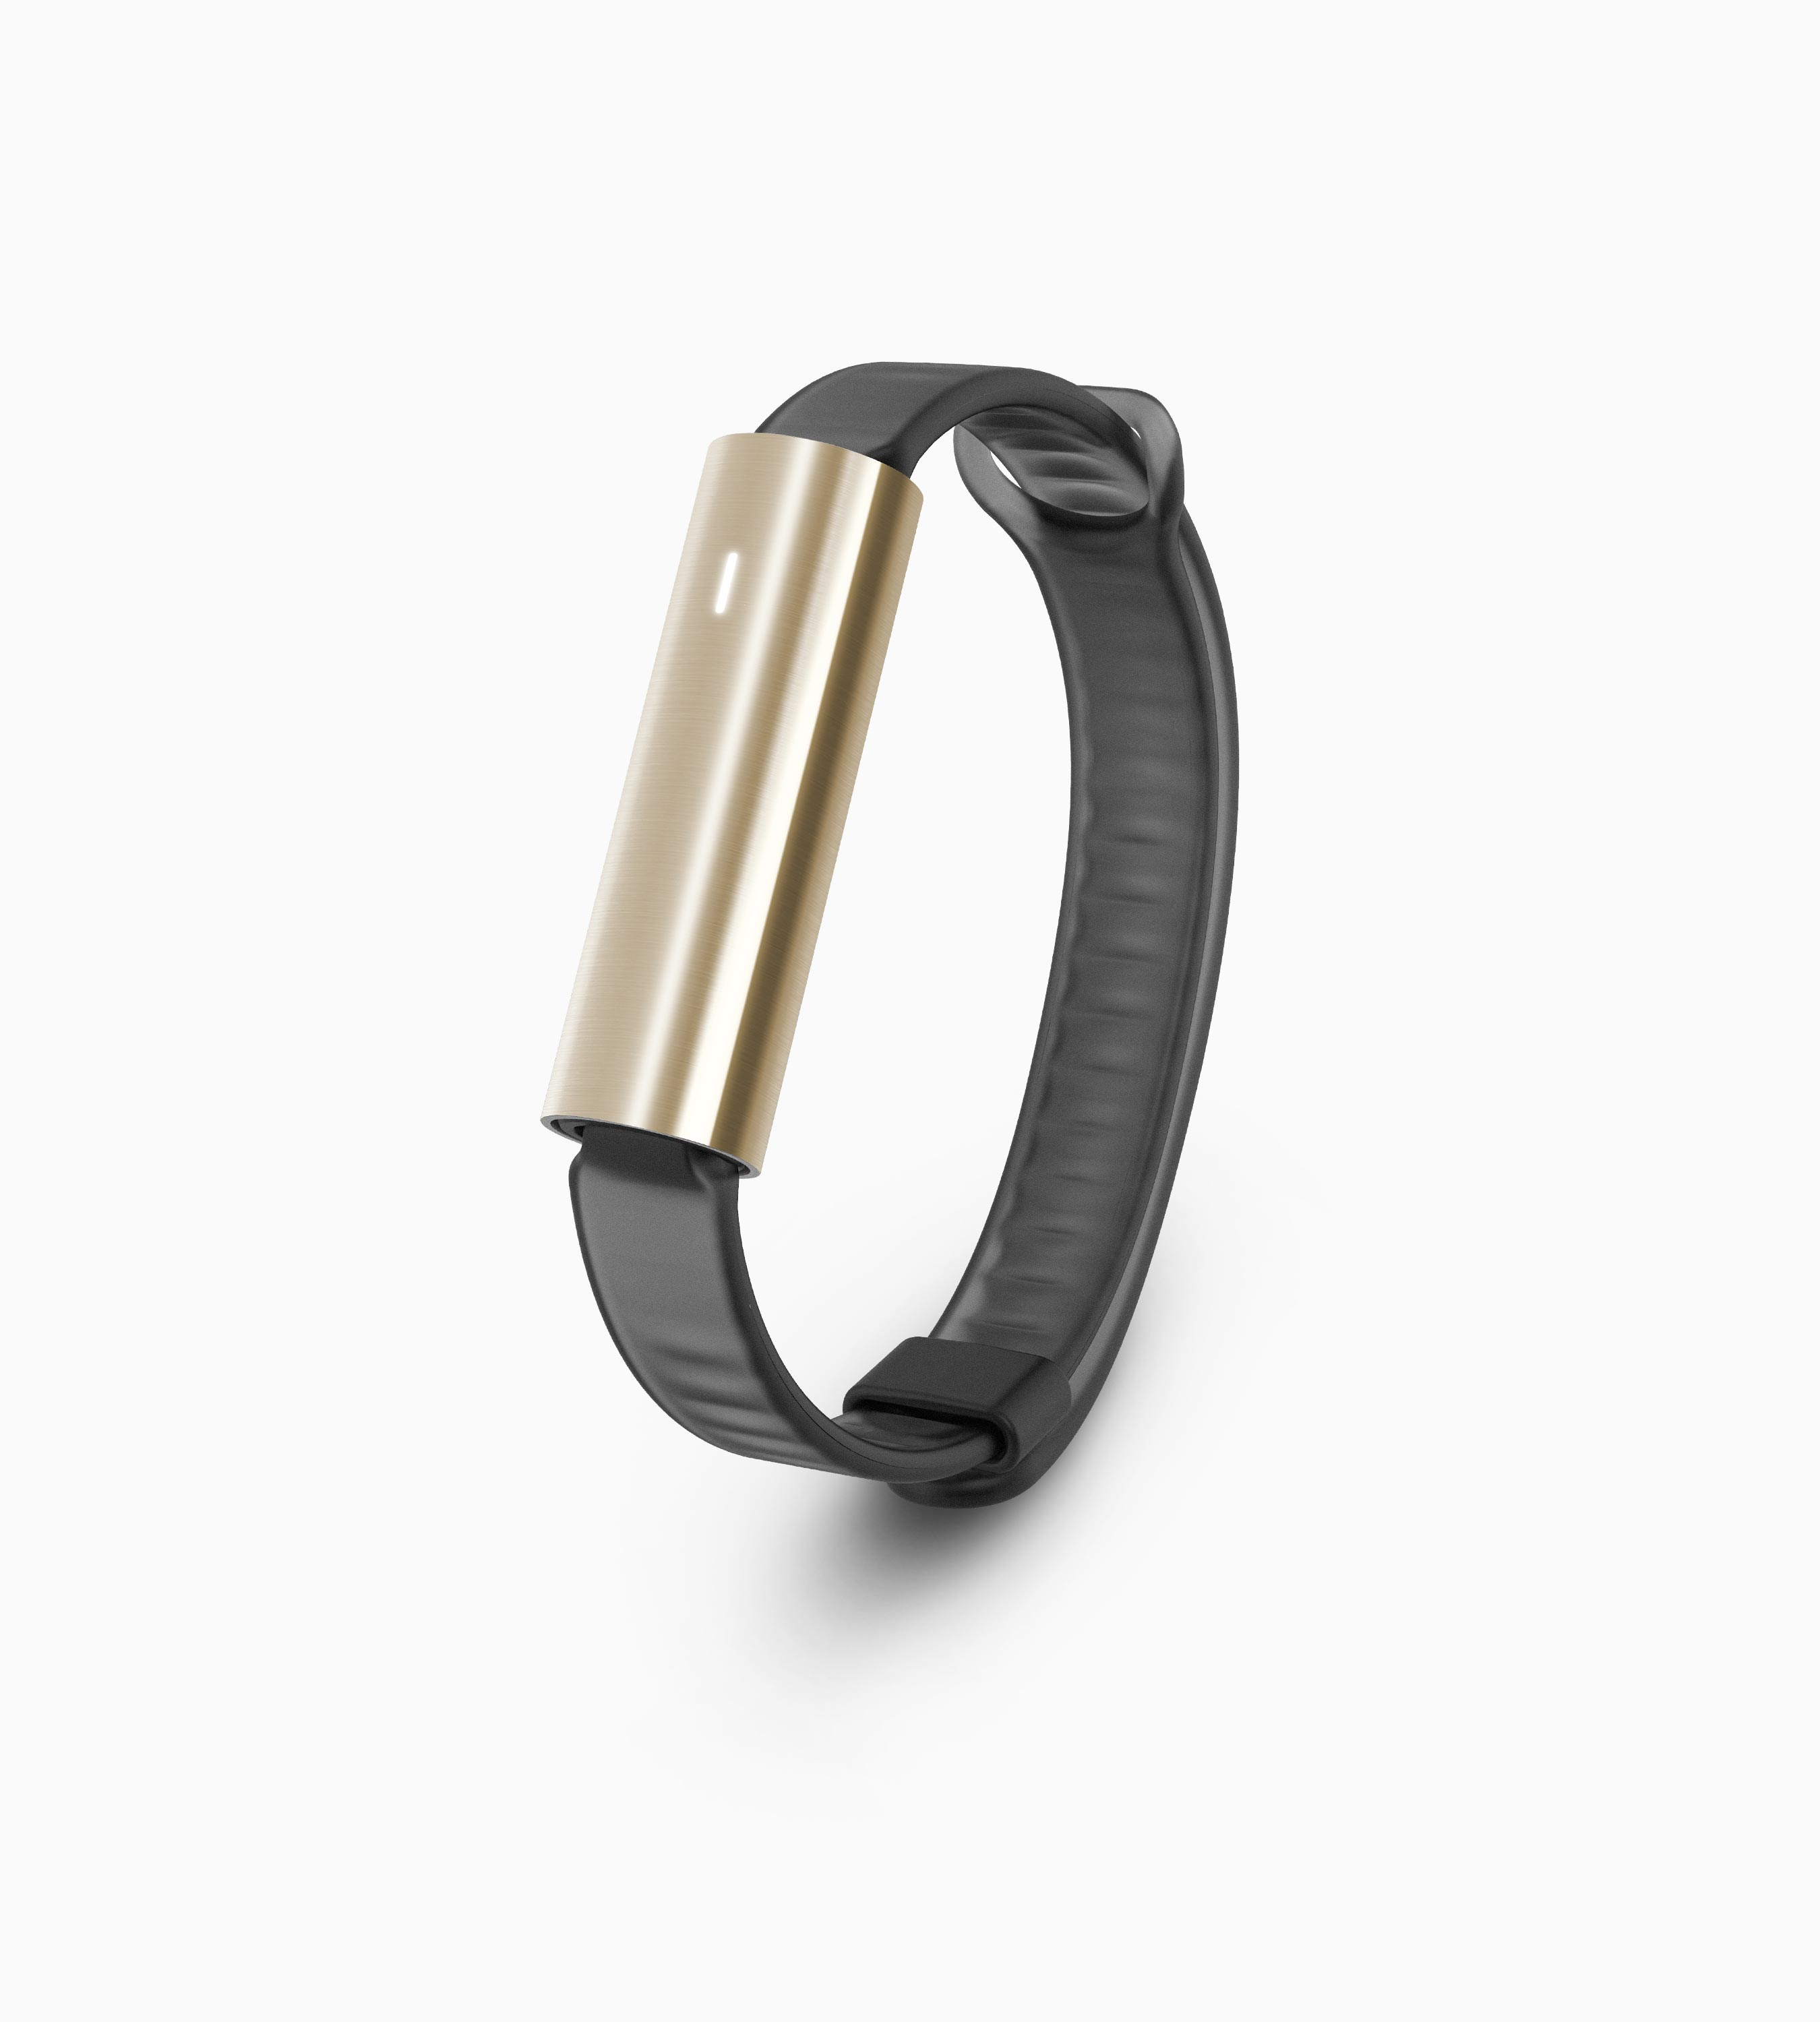 Misfit Ray Fitness & Sleep Tracker - Polished Stainless Steel Gold + Black Sport Band